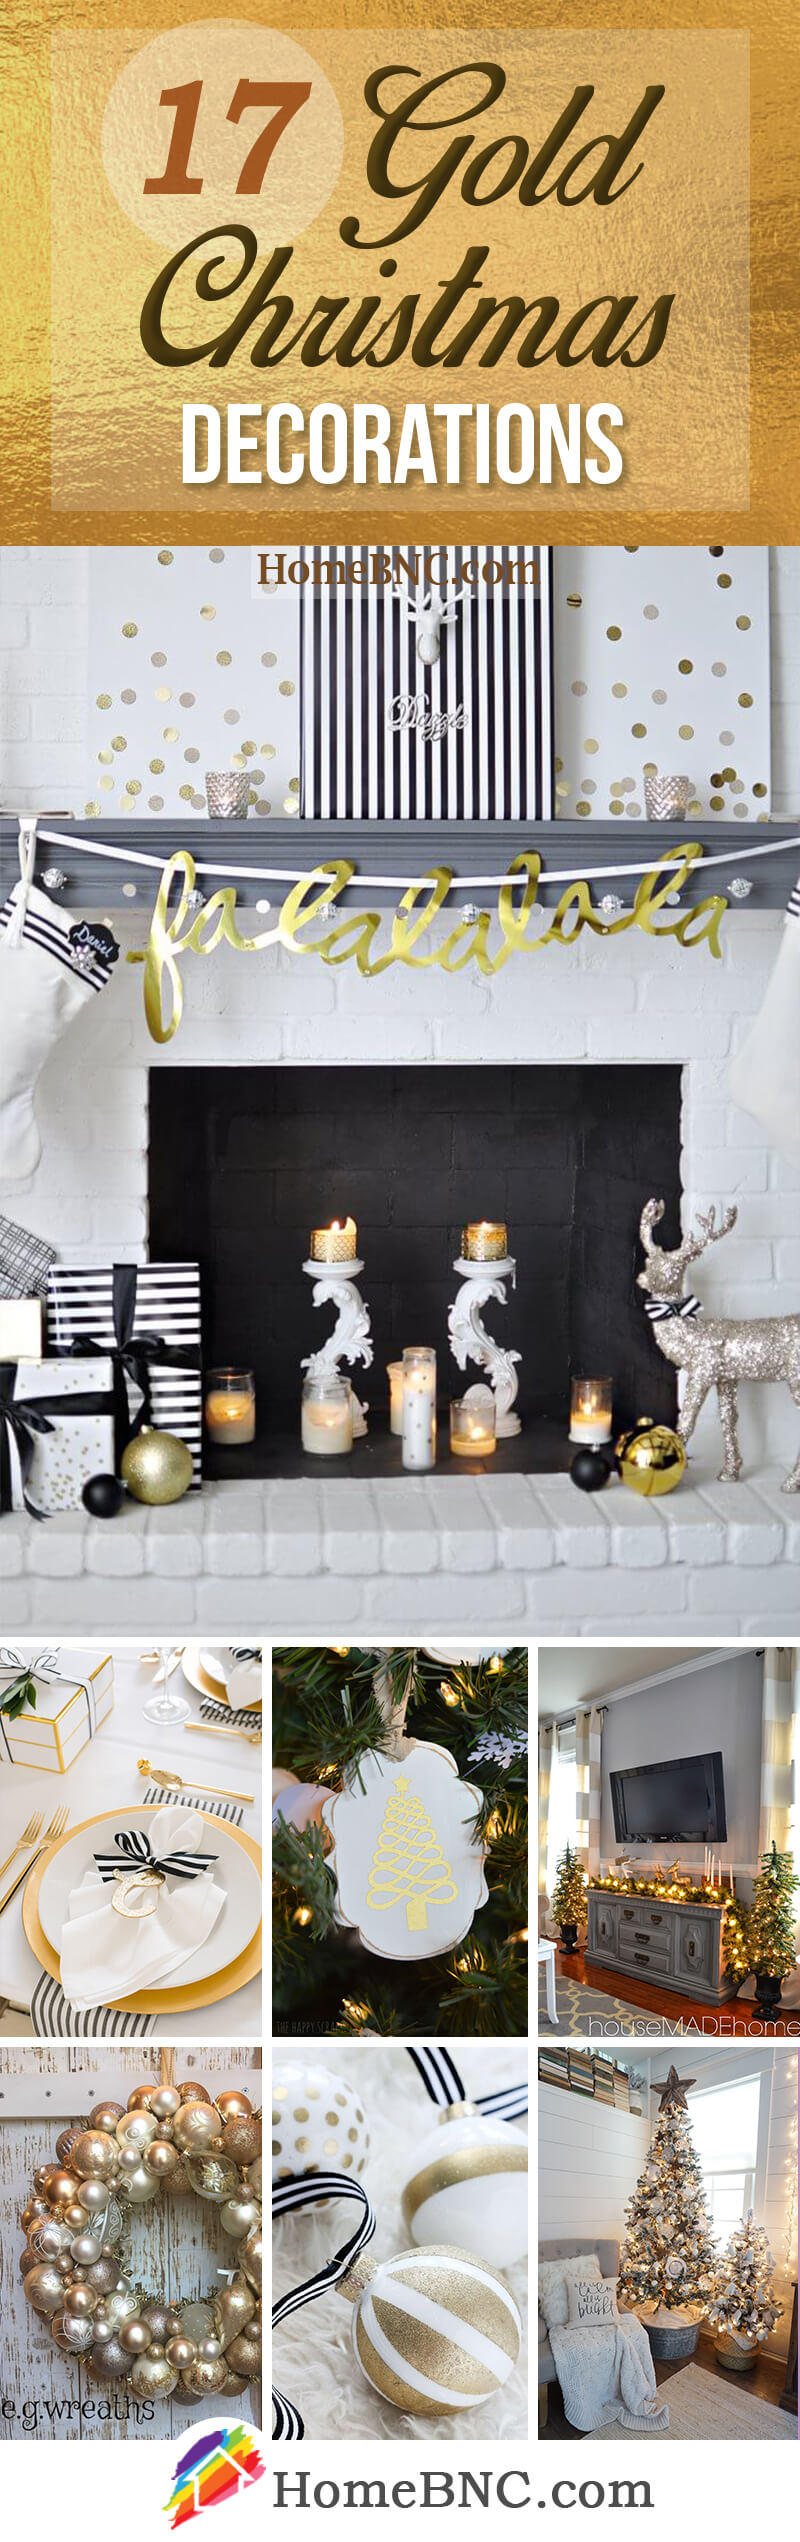 Gold Christmas Decor Ideas